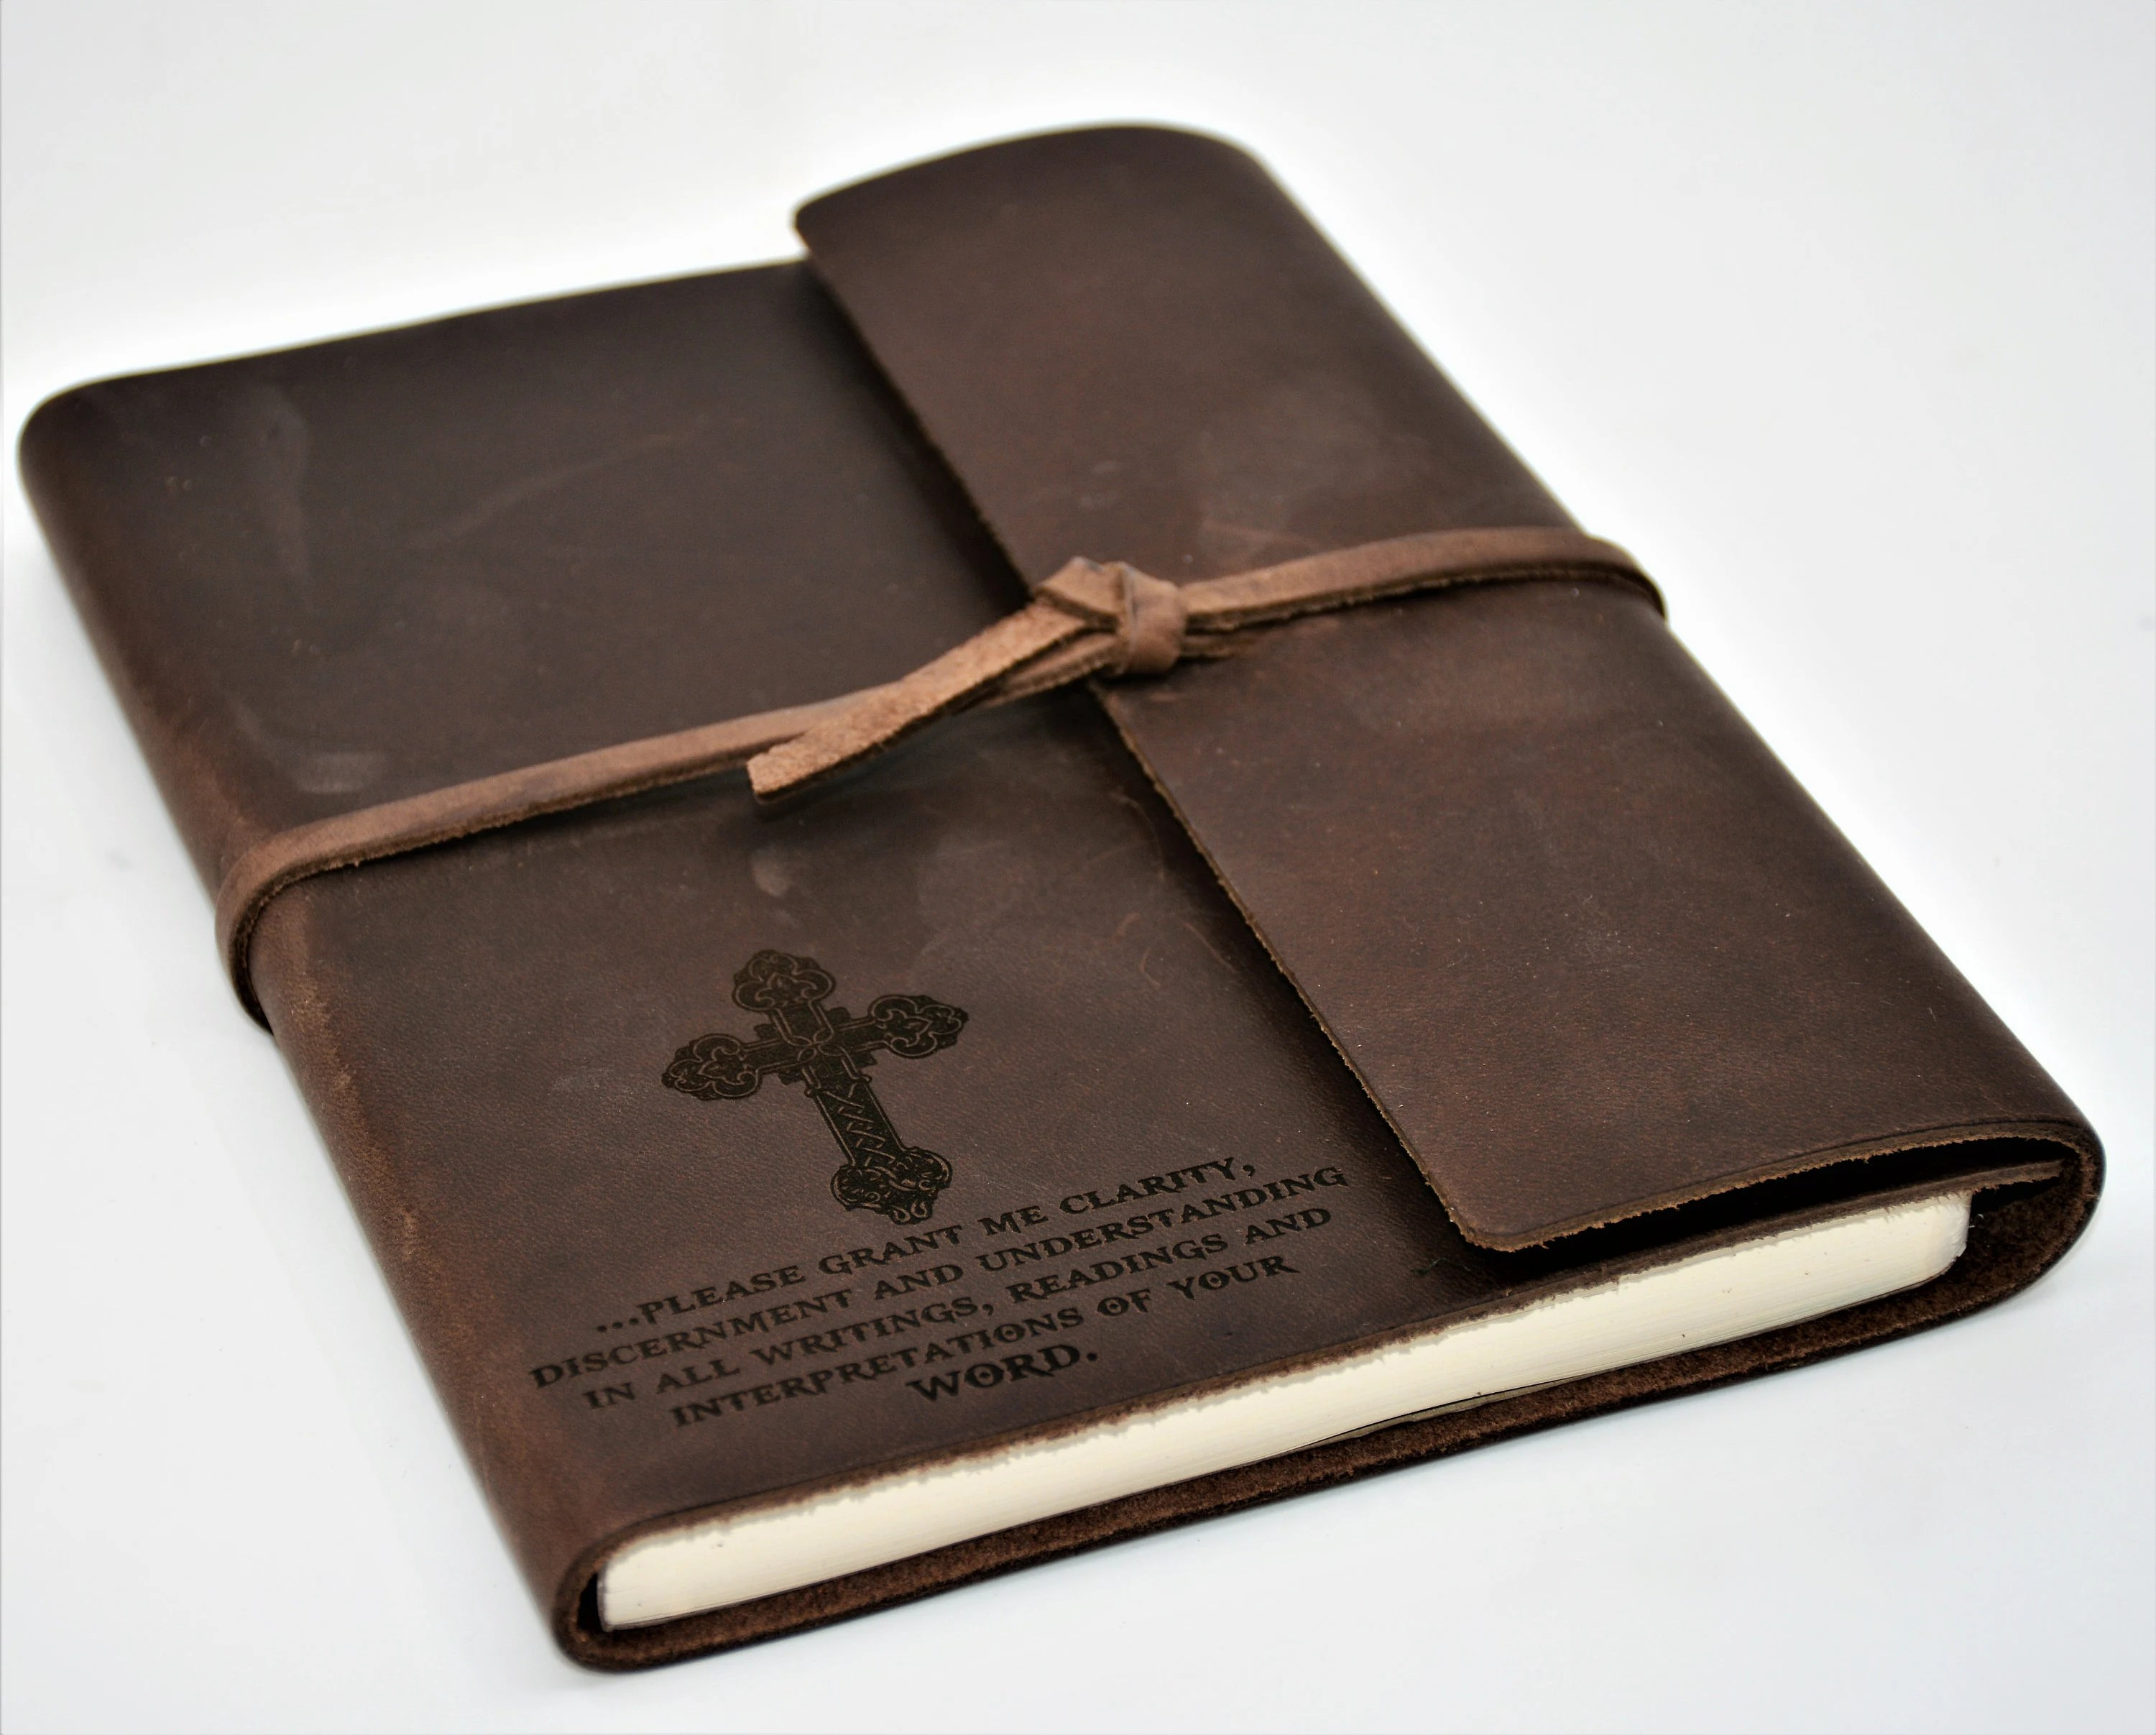 Premium Leather Journal Personalized Custom Engraved image 8